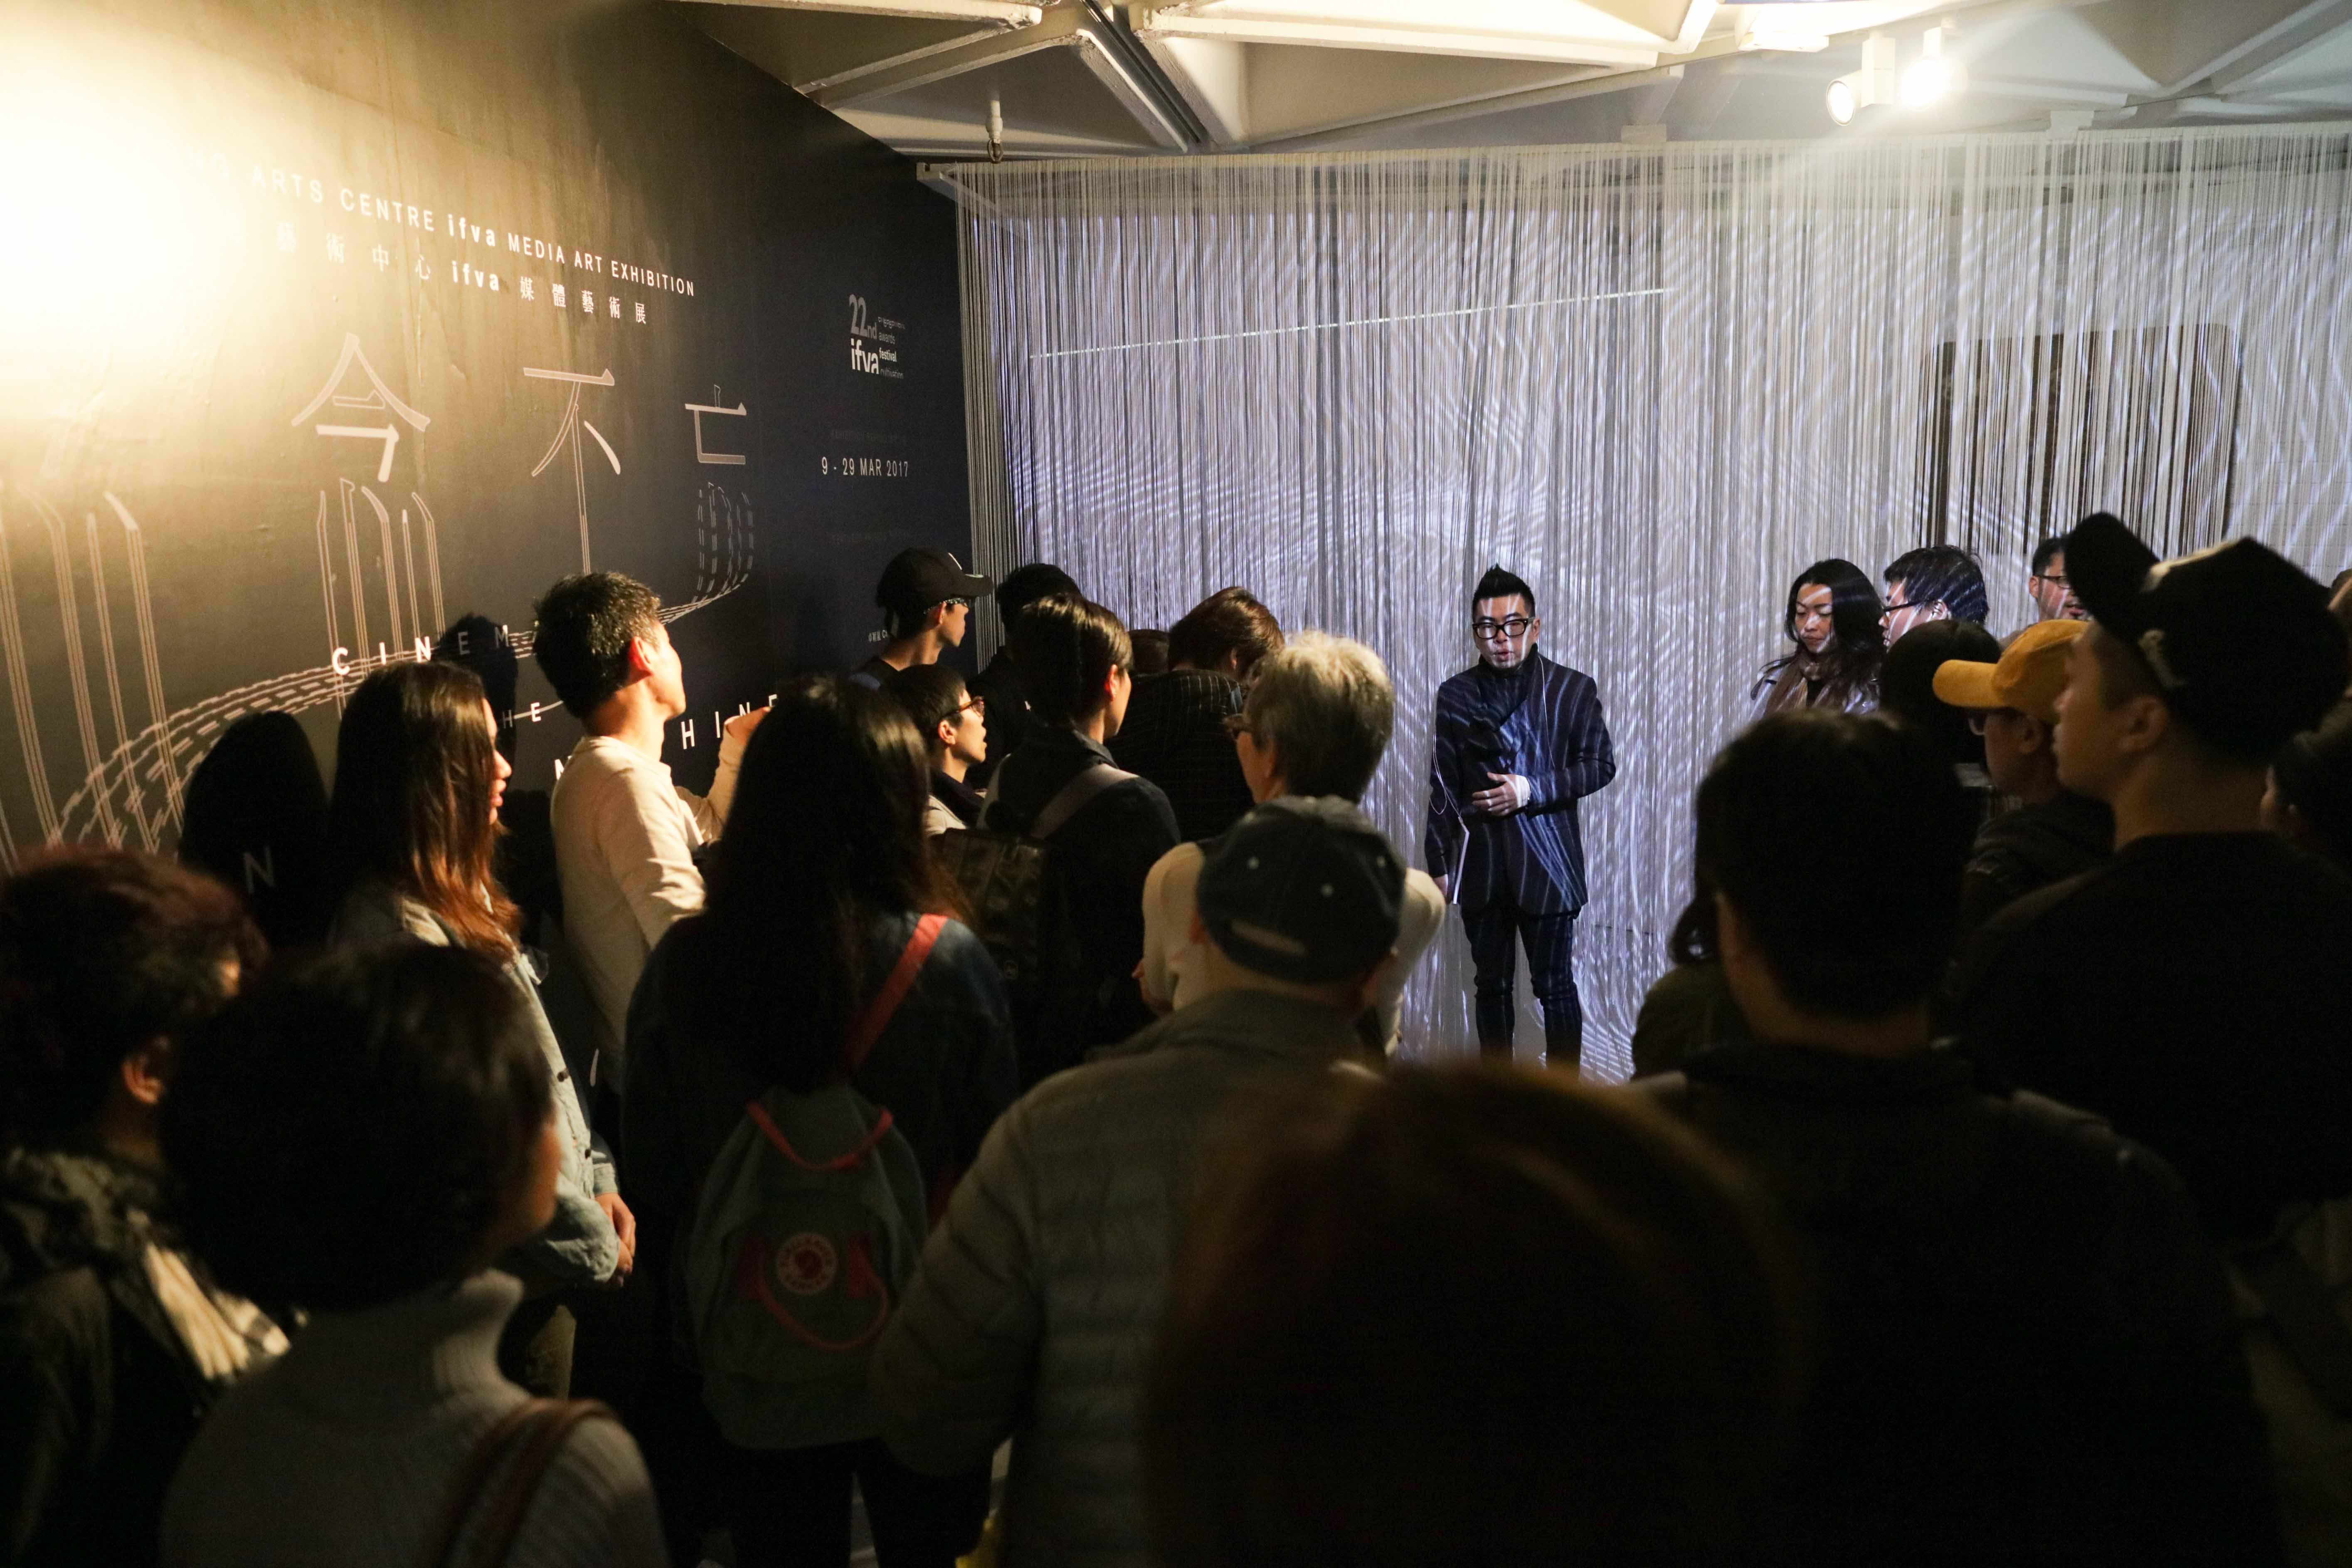 Curator Ip Yuk-yiu led the guided tour and shared with visitors his curatorial concepts.